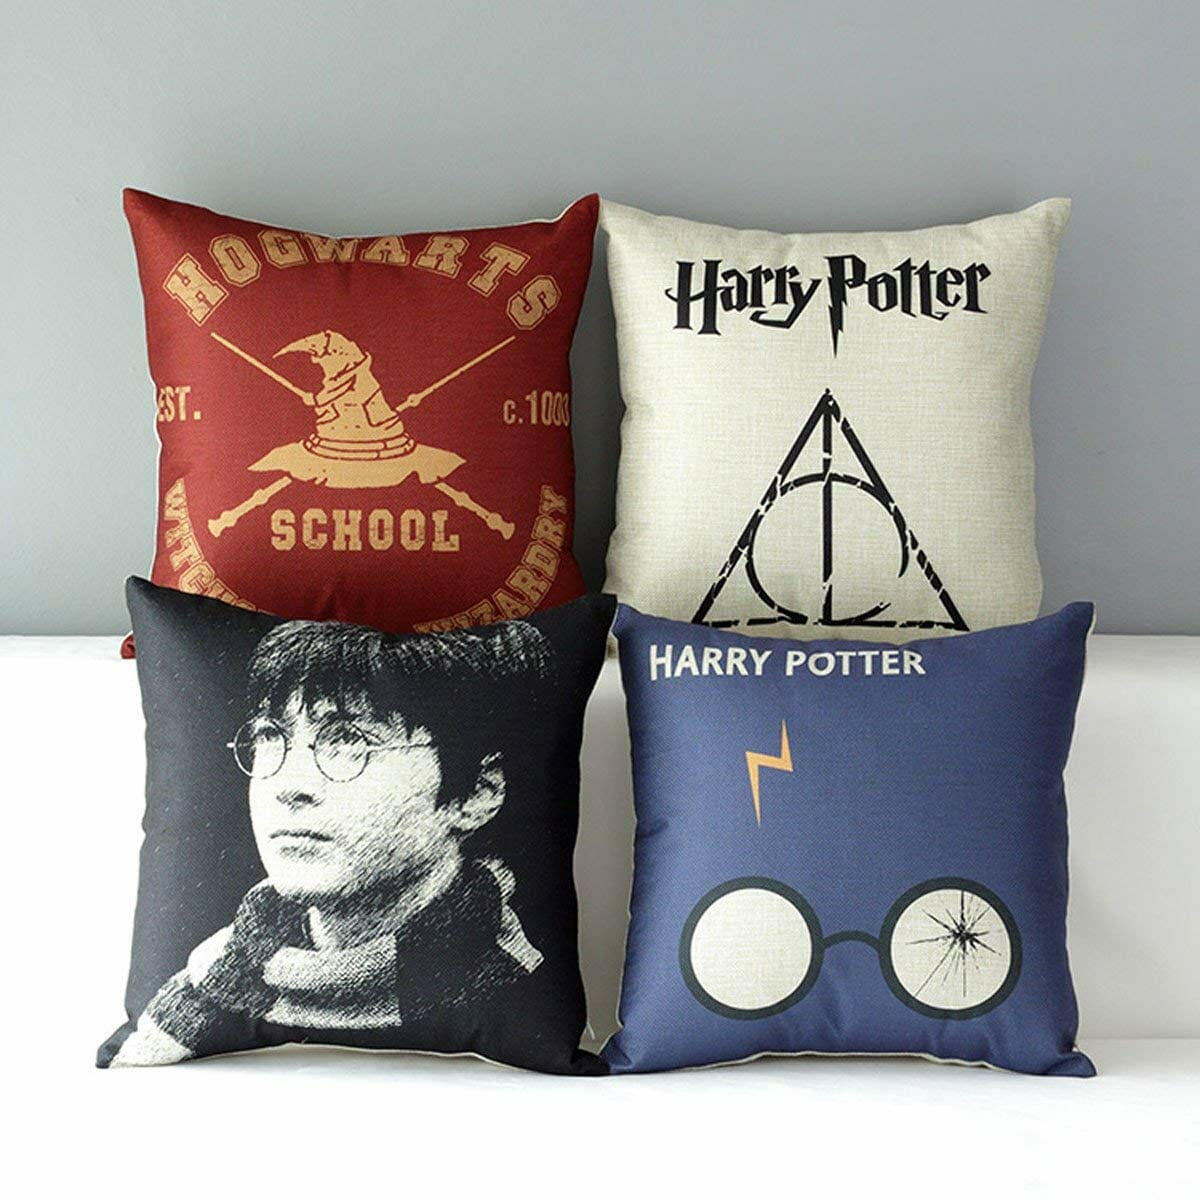 harry-potter-gifts-pillows